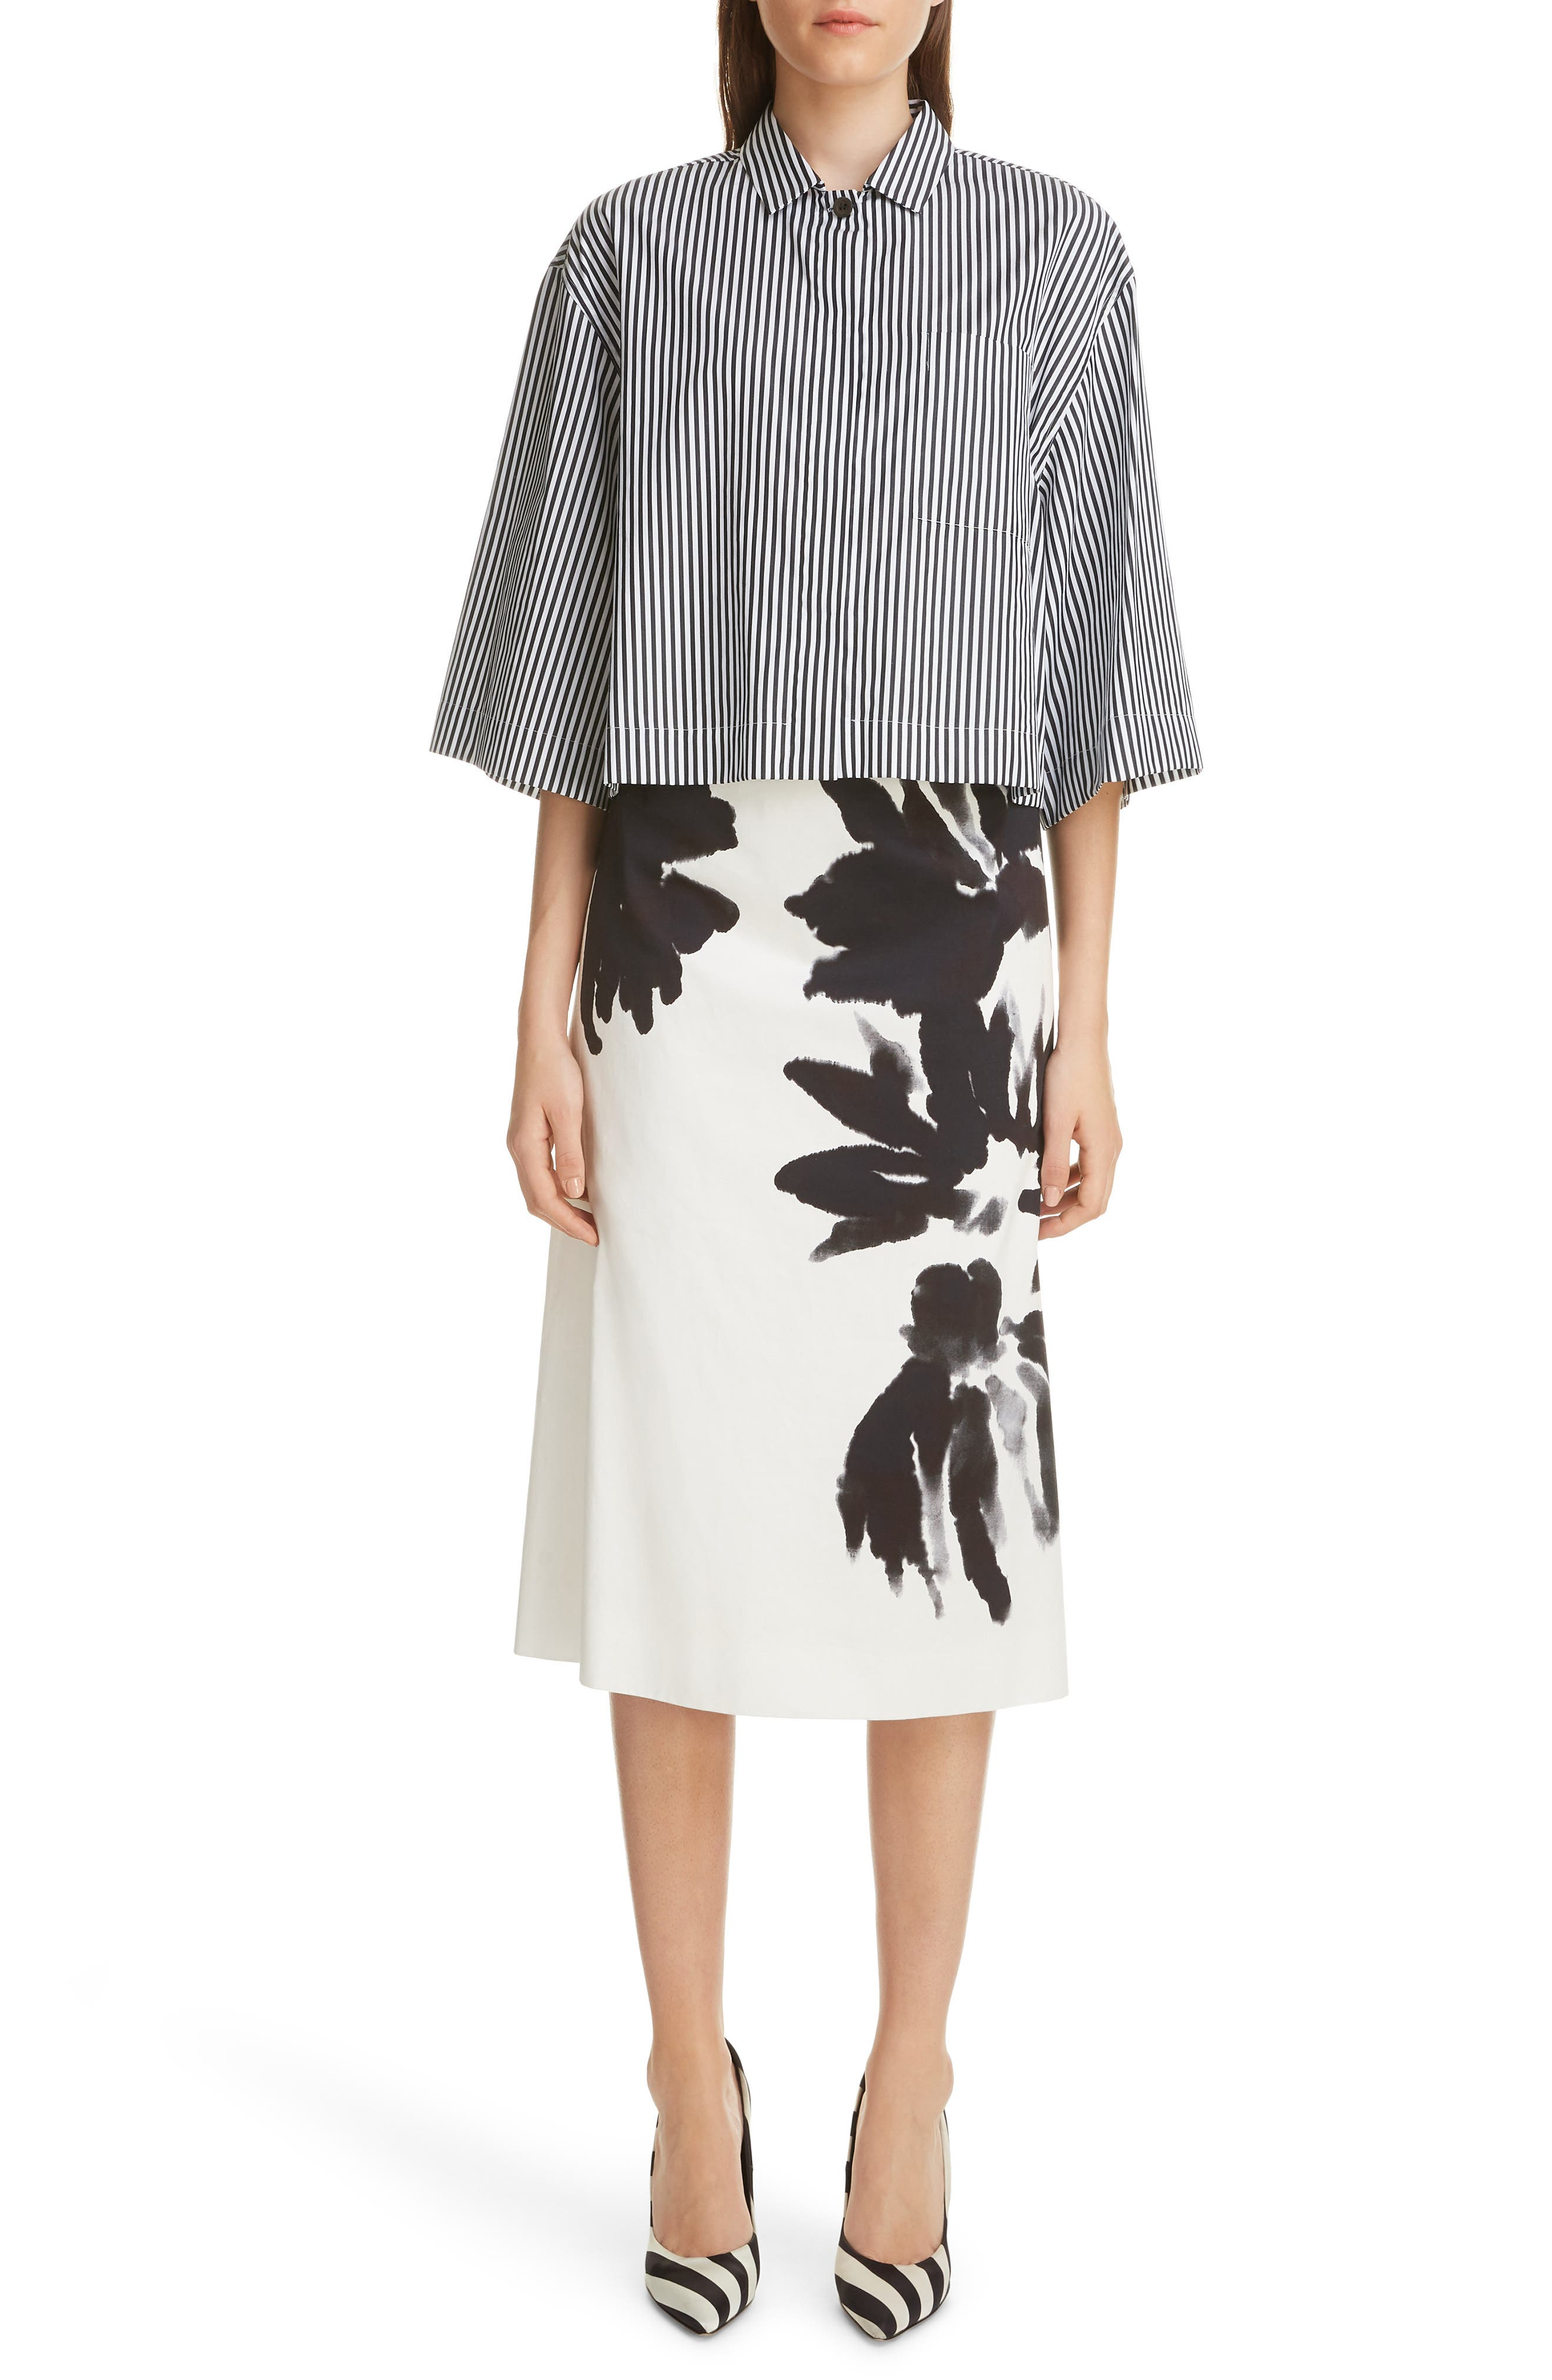 Brush Print Cotton Skirt,                             Alternate thumbnail 6, color,                             900-BLACK